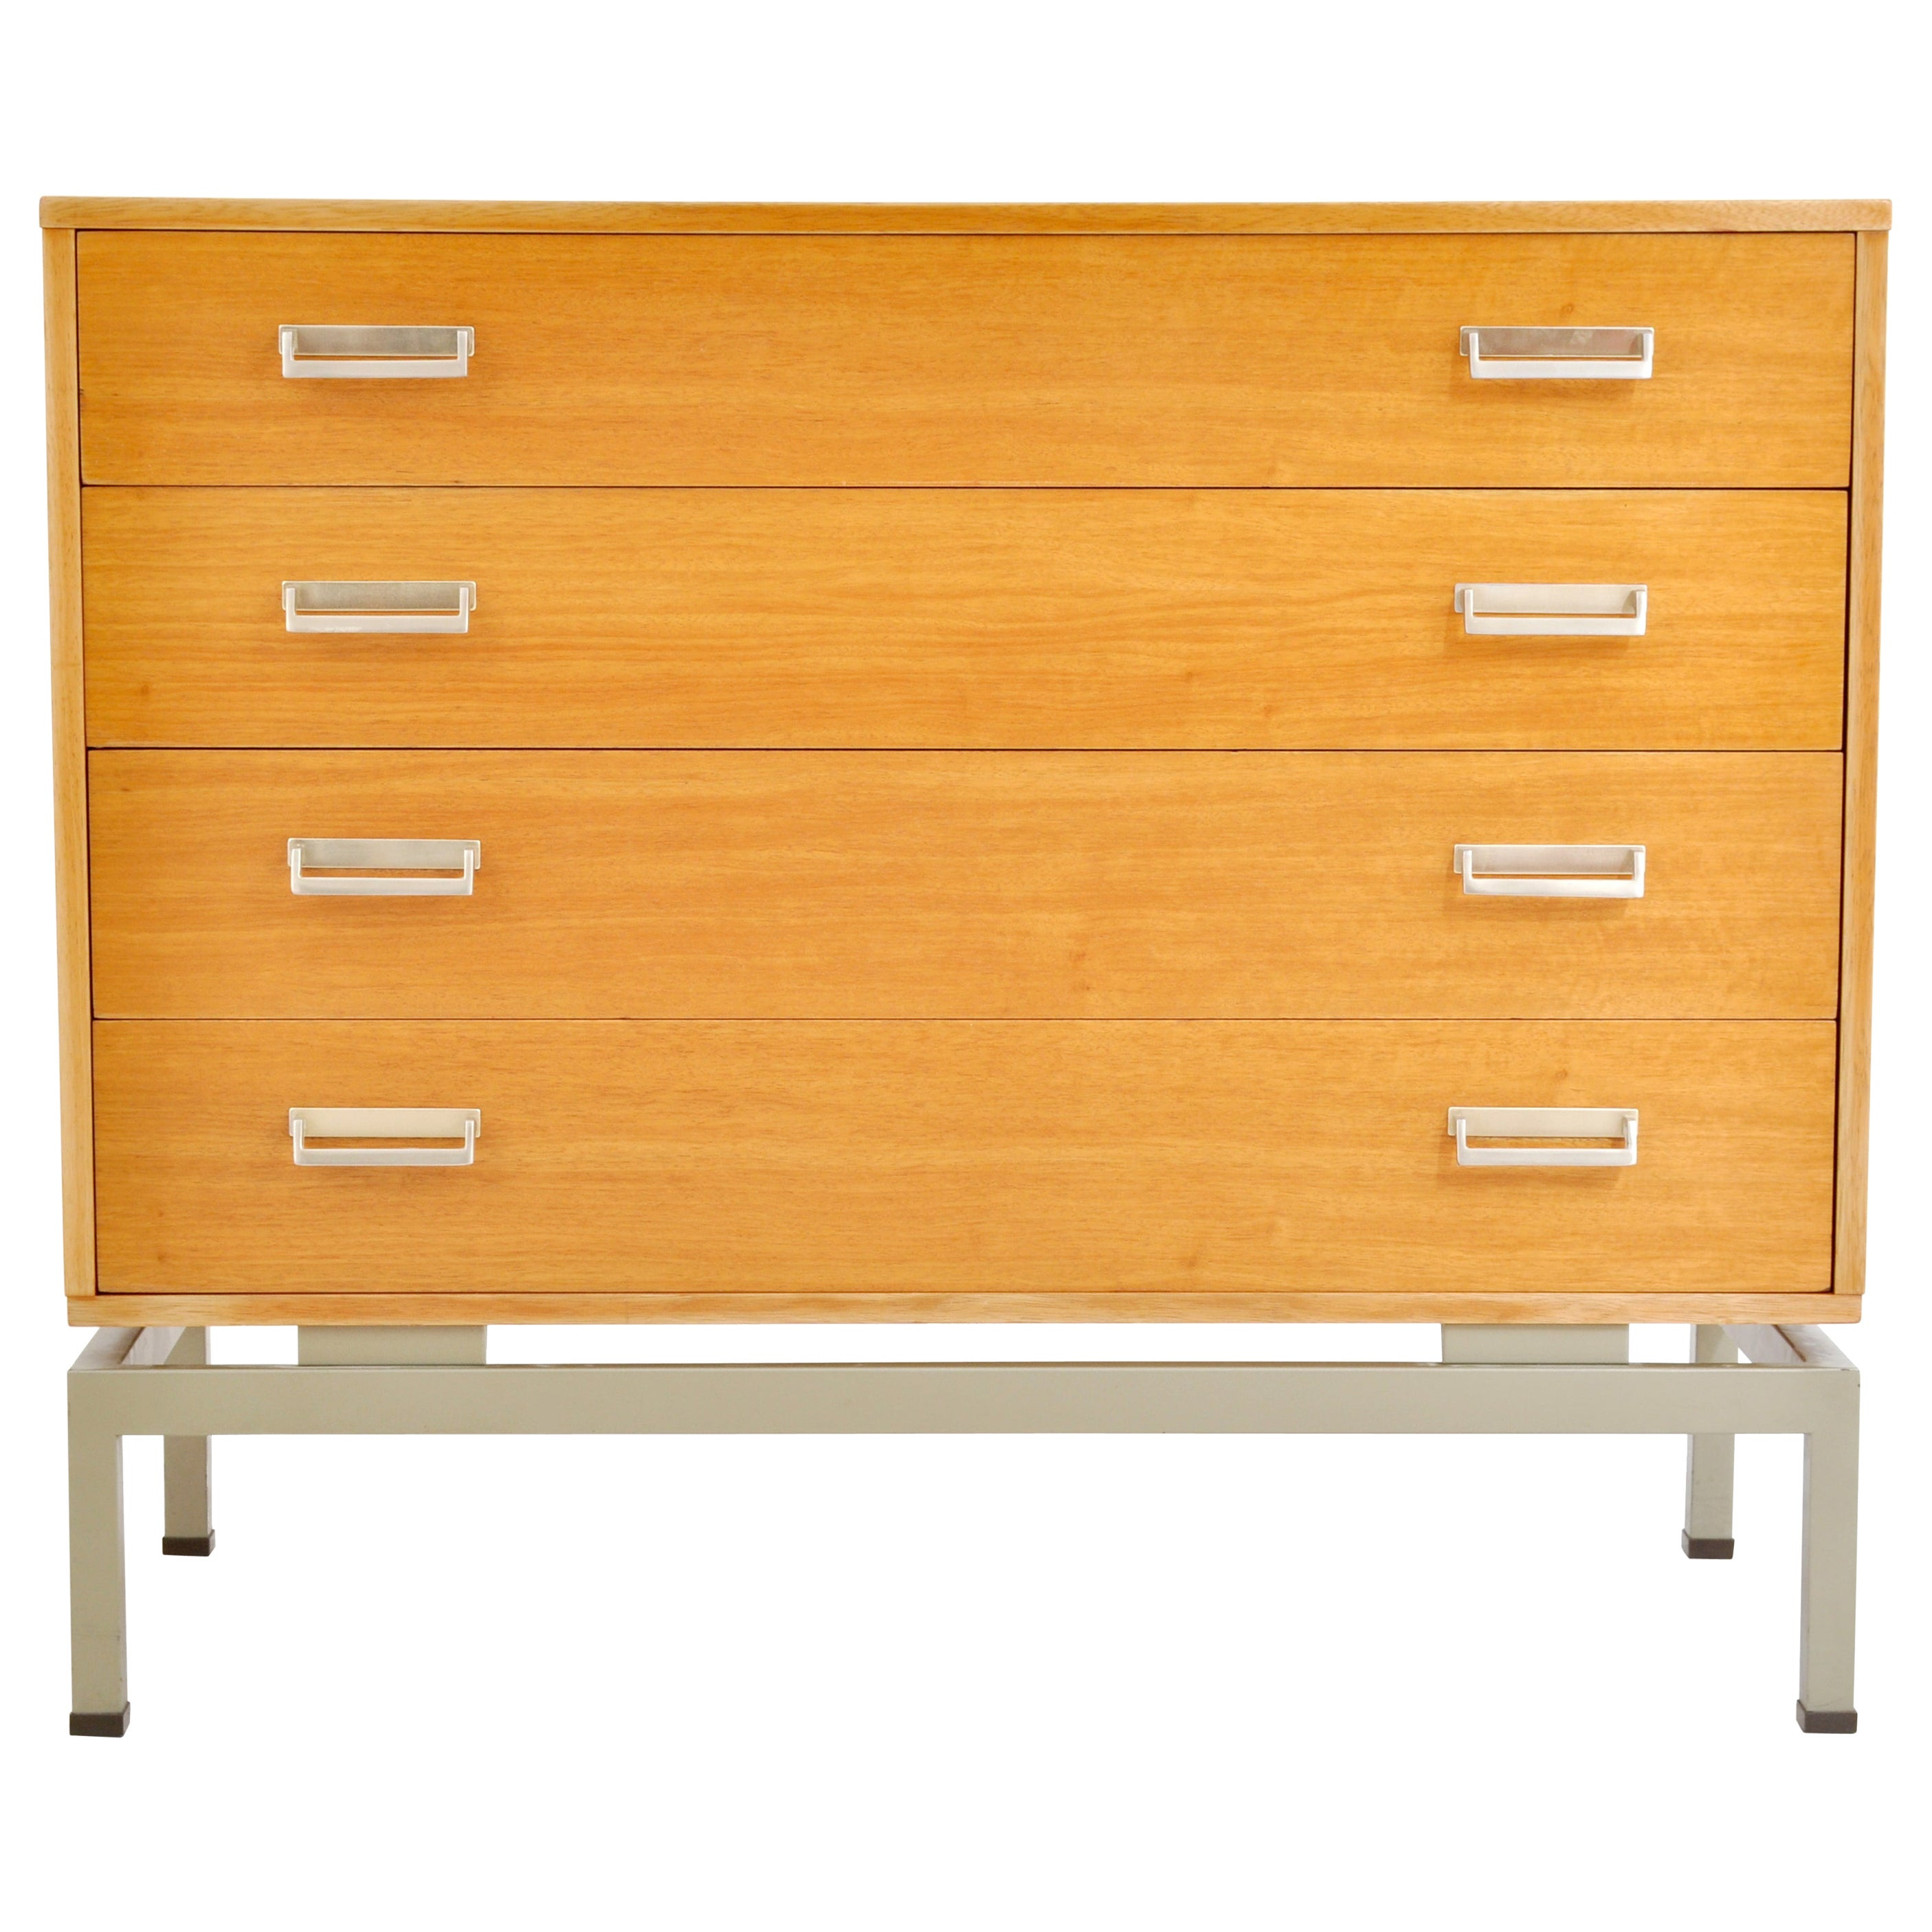 "Mid-Century Modern Danish Style Teak ""Limba"" Chest of Drawers by G Plan, 1950s"